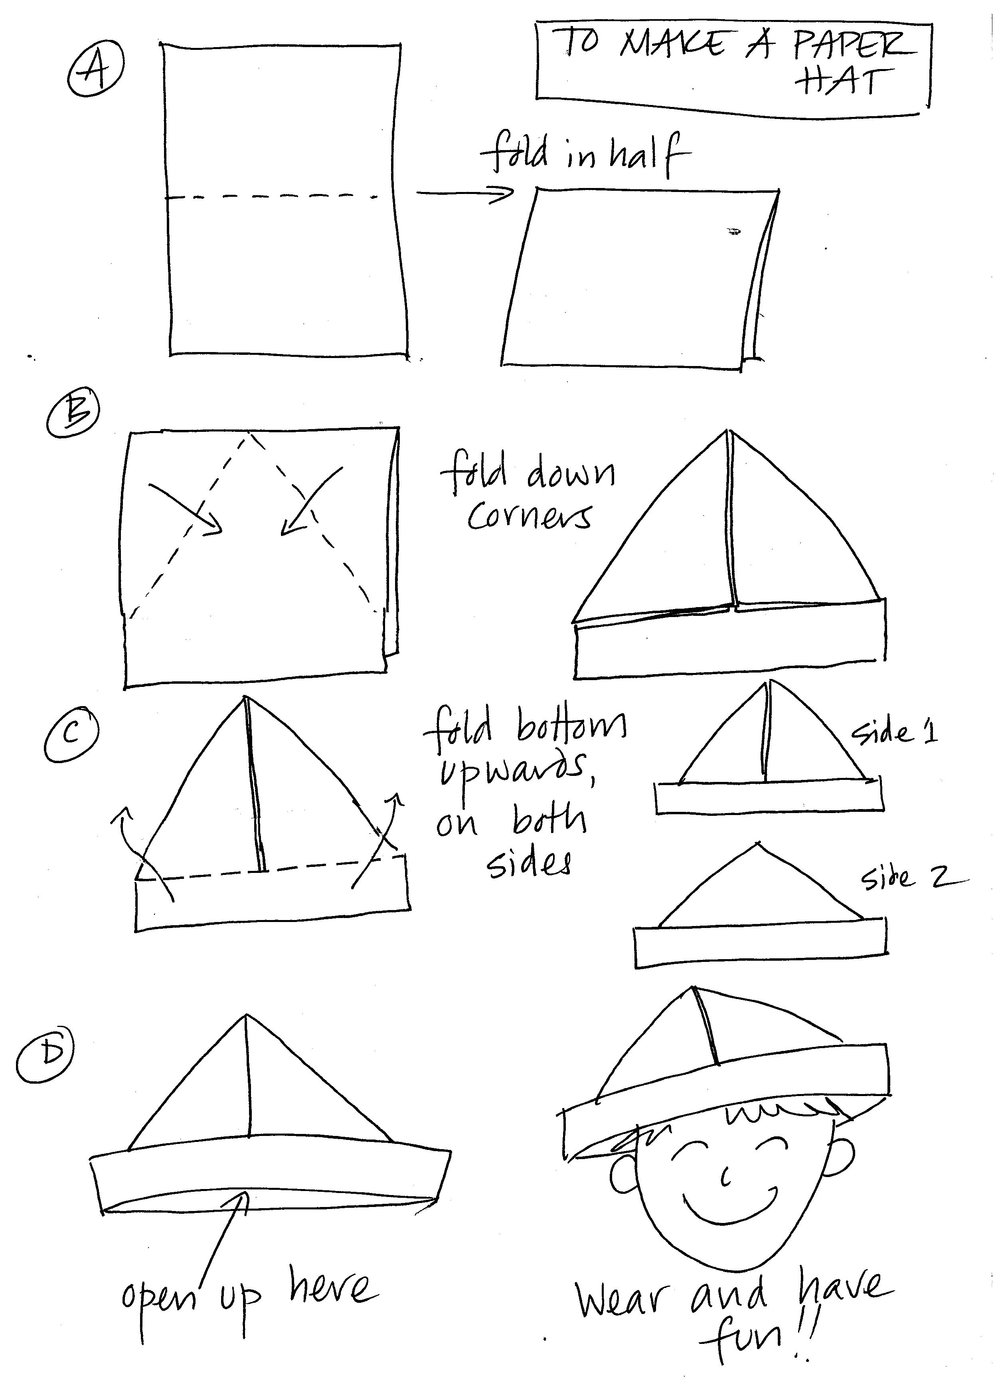 paper hat instructions.jpg